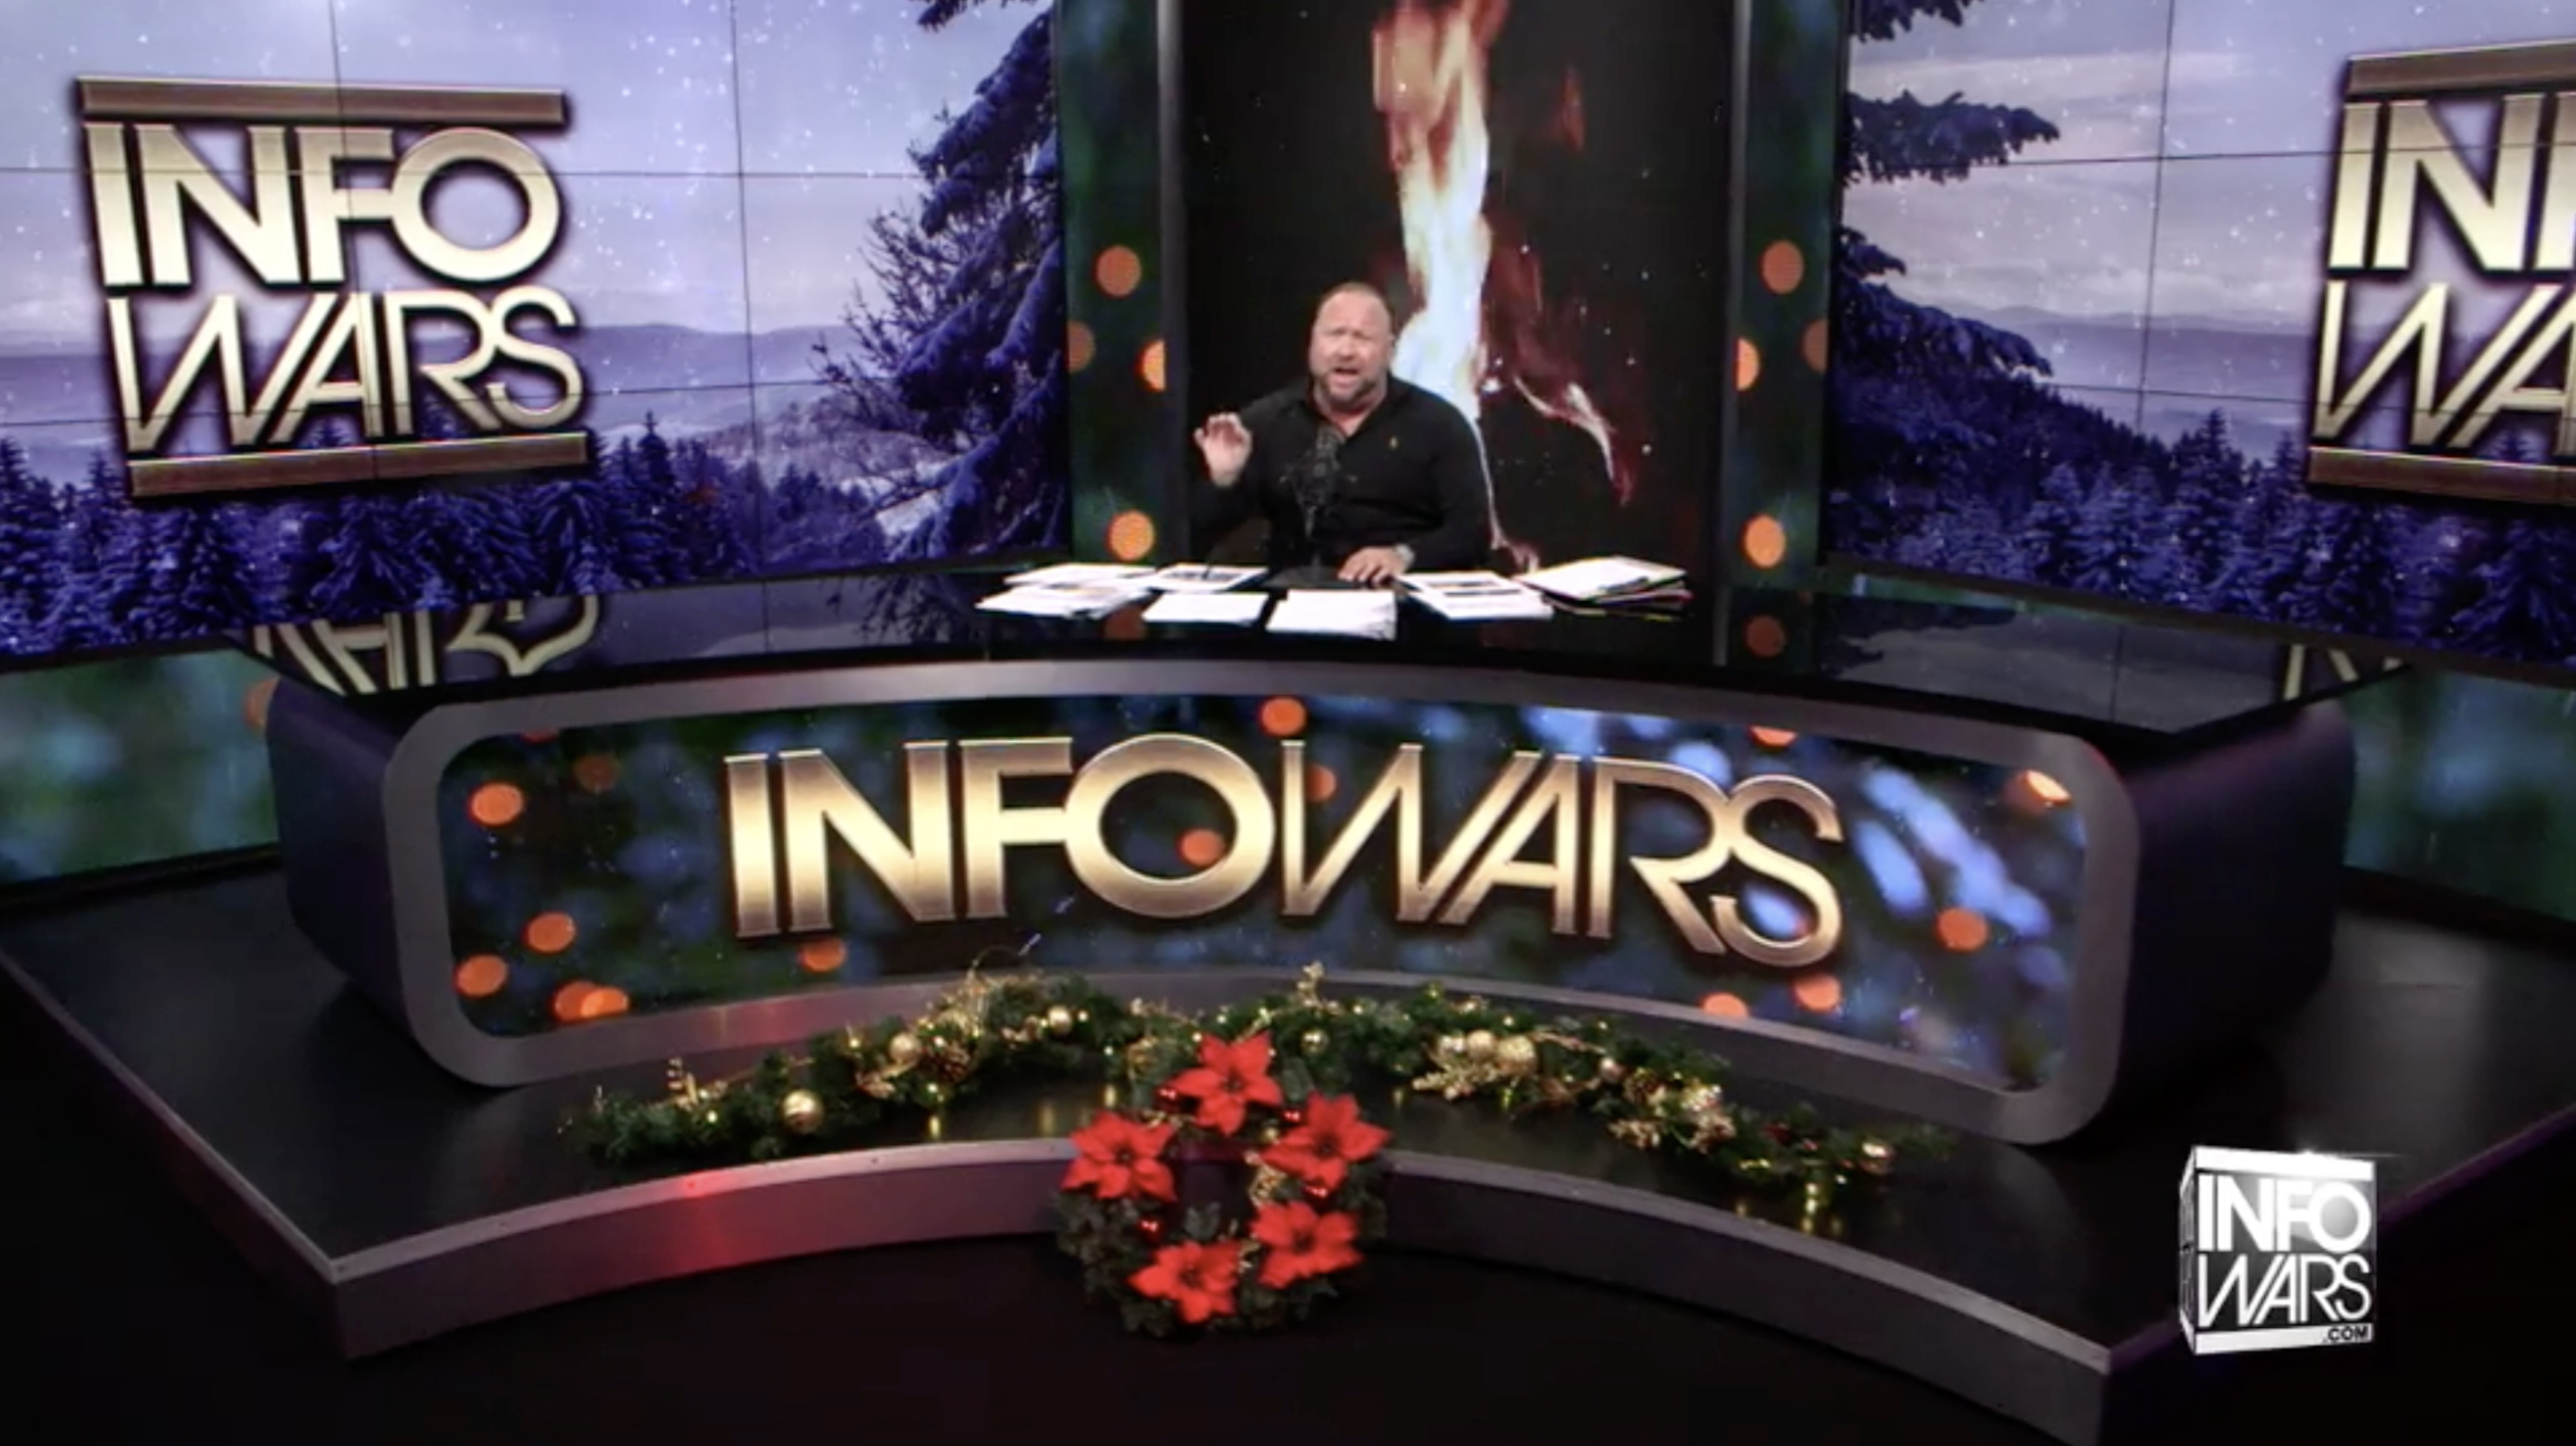 Alex Jones Christmas Fire Snow Infowars Studio EXZM Zack Mount December 16th 2020